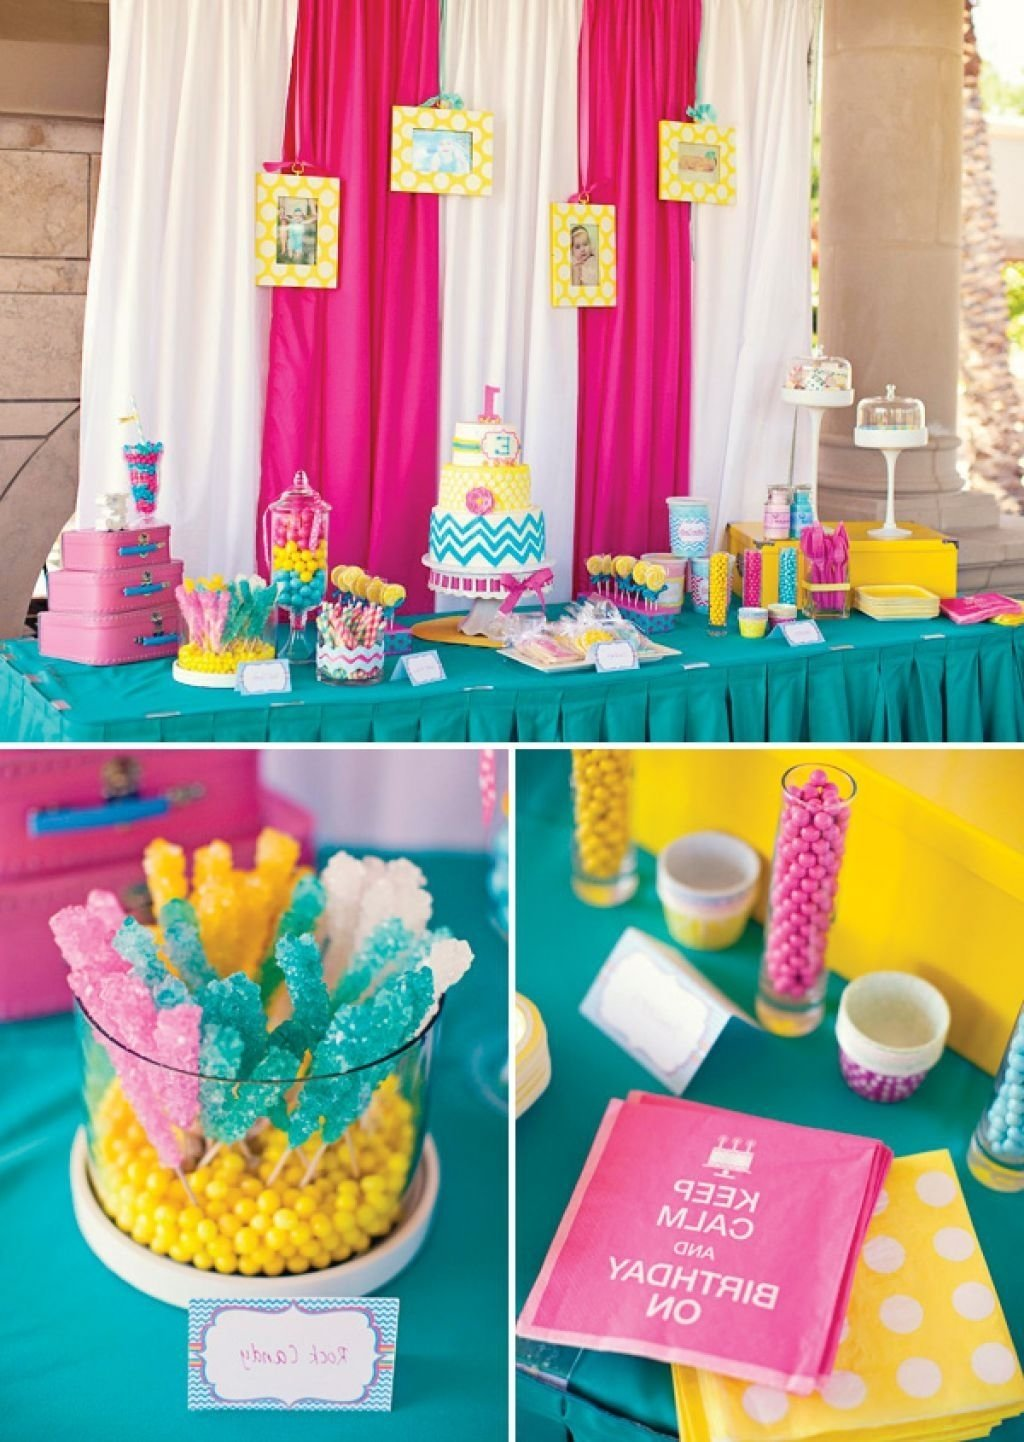 10 Best Birthday Party Ideas For 6 Year Old Girl outdoor party decorations google search madeline pinterest 6 2020